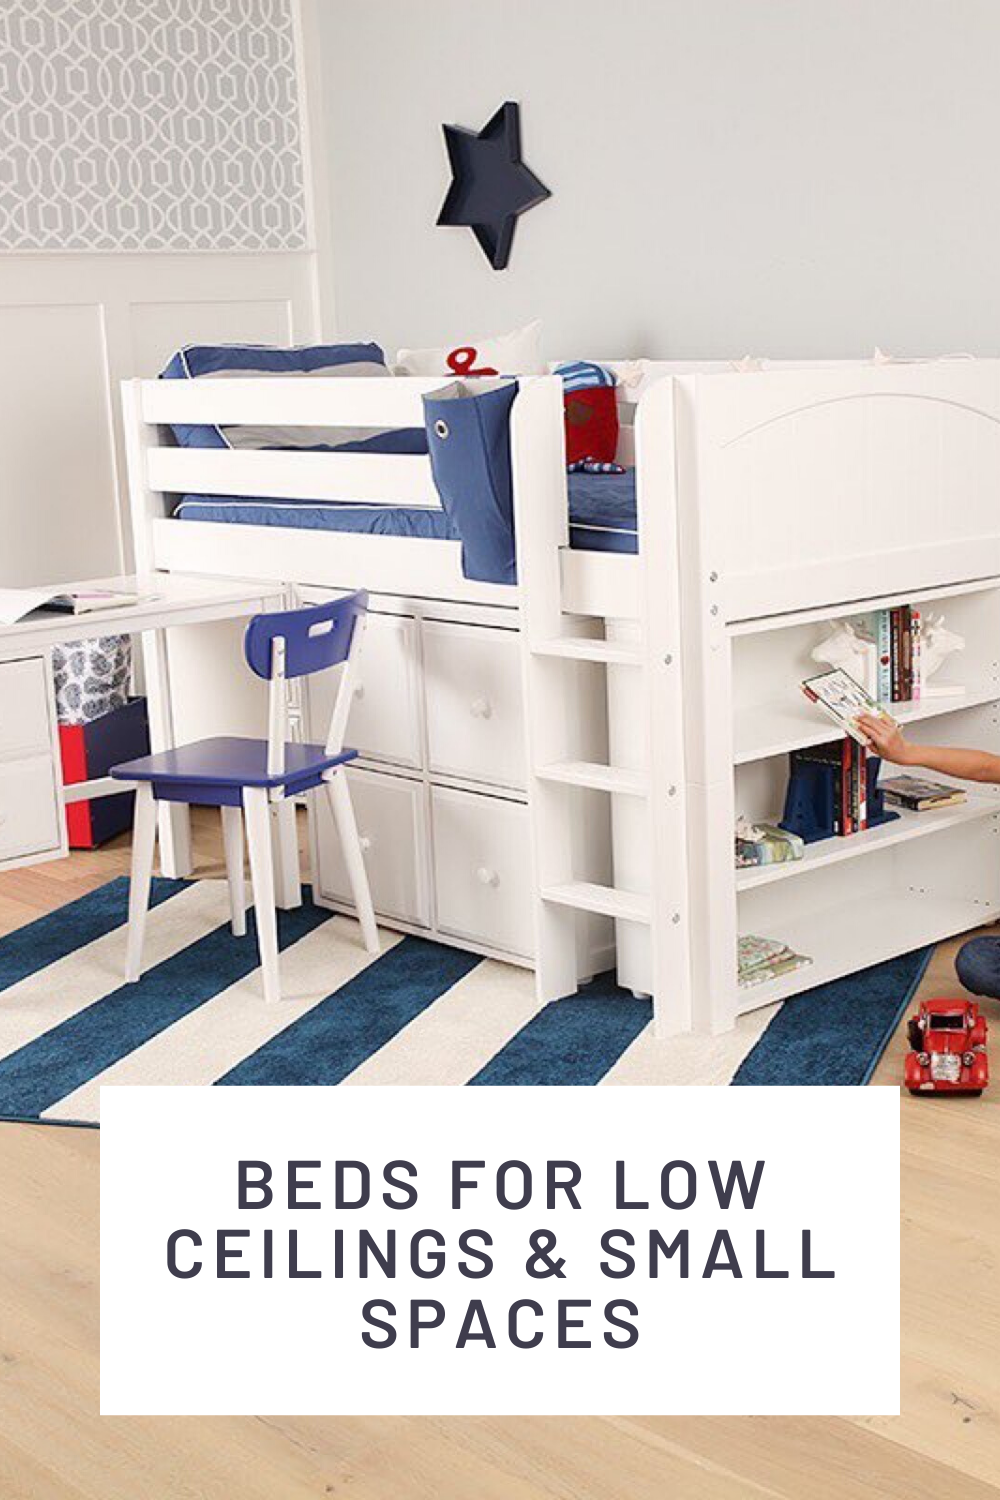 Low Ceilings Small Spaces Low Loft Beds Loft Bed Kid Beds